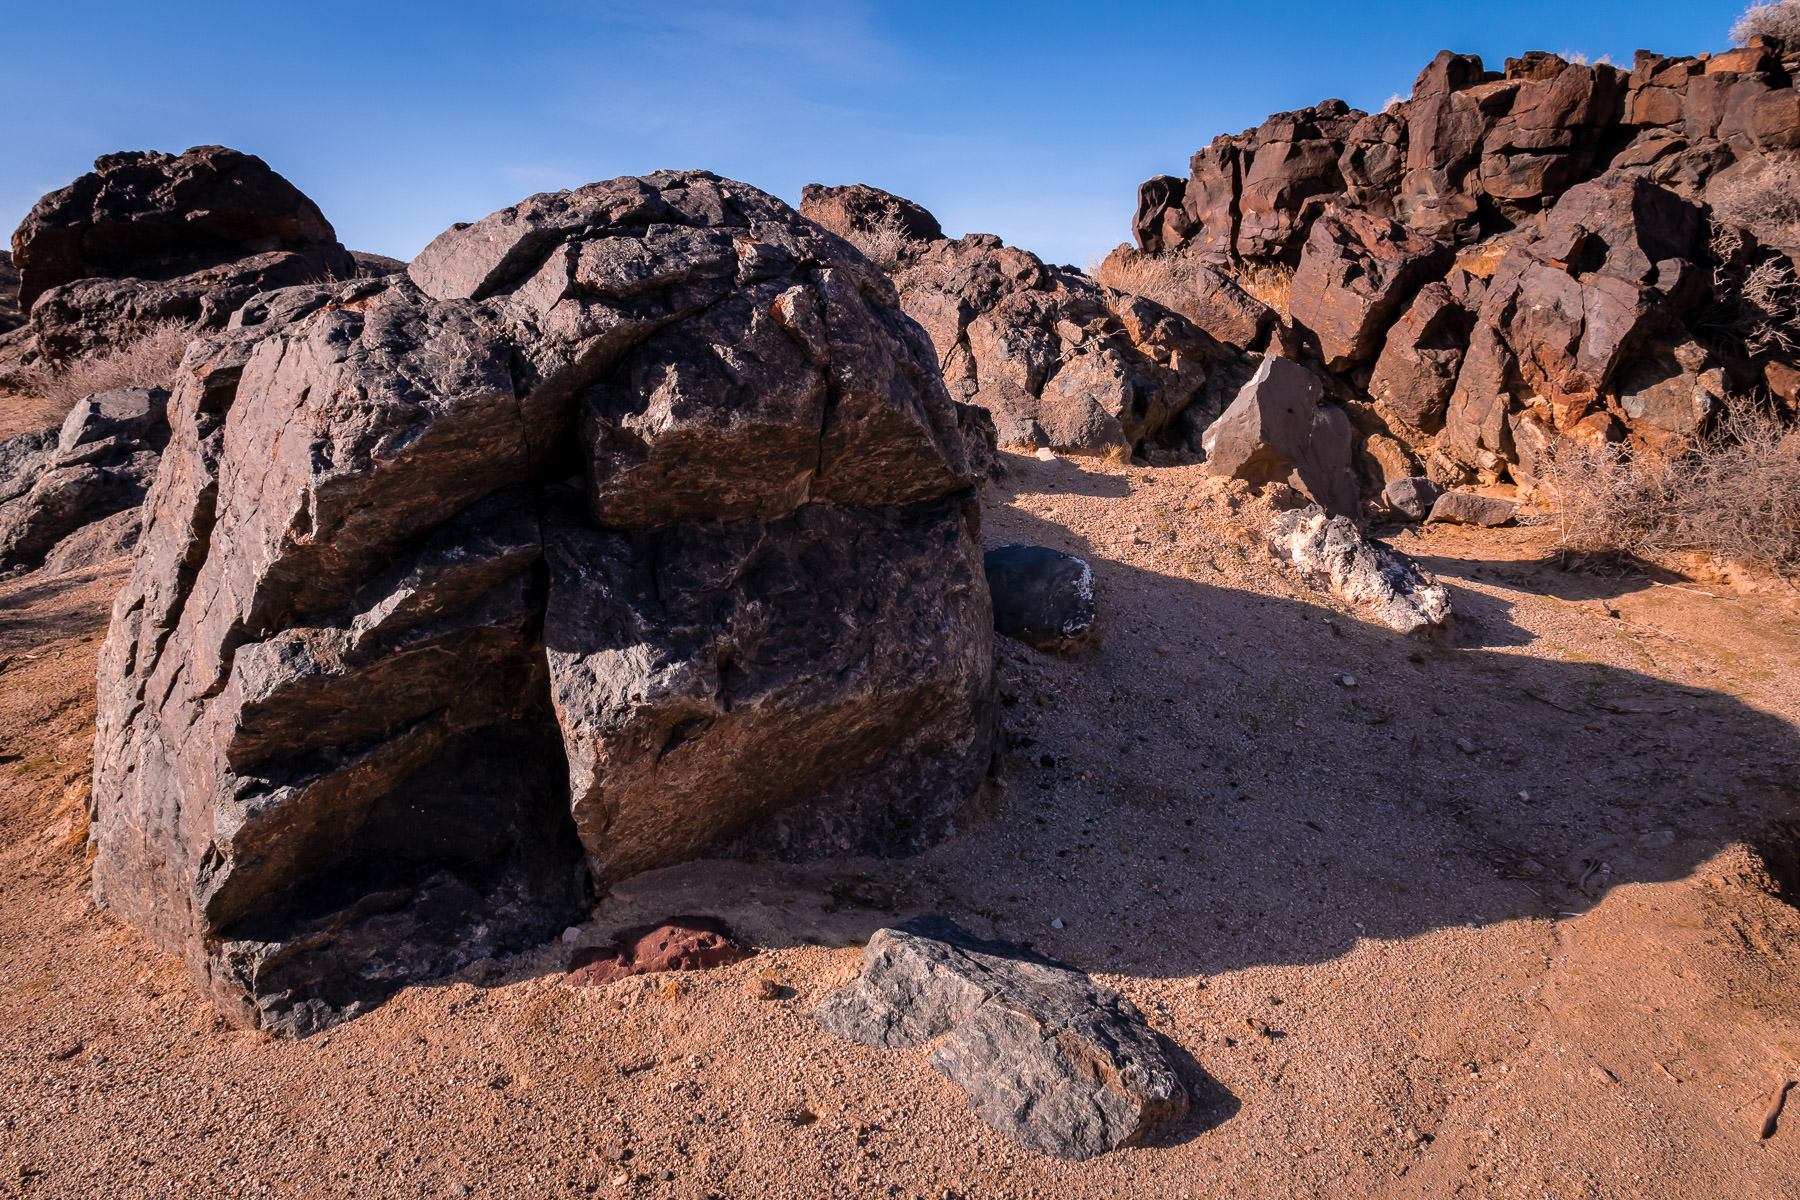 Ancient rocks cast late afternoon shadows in California's Mojave National Preserve.